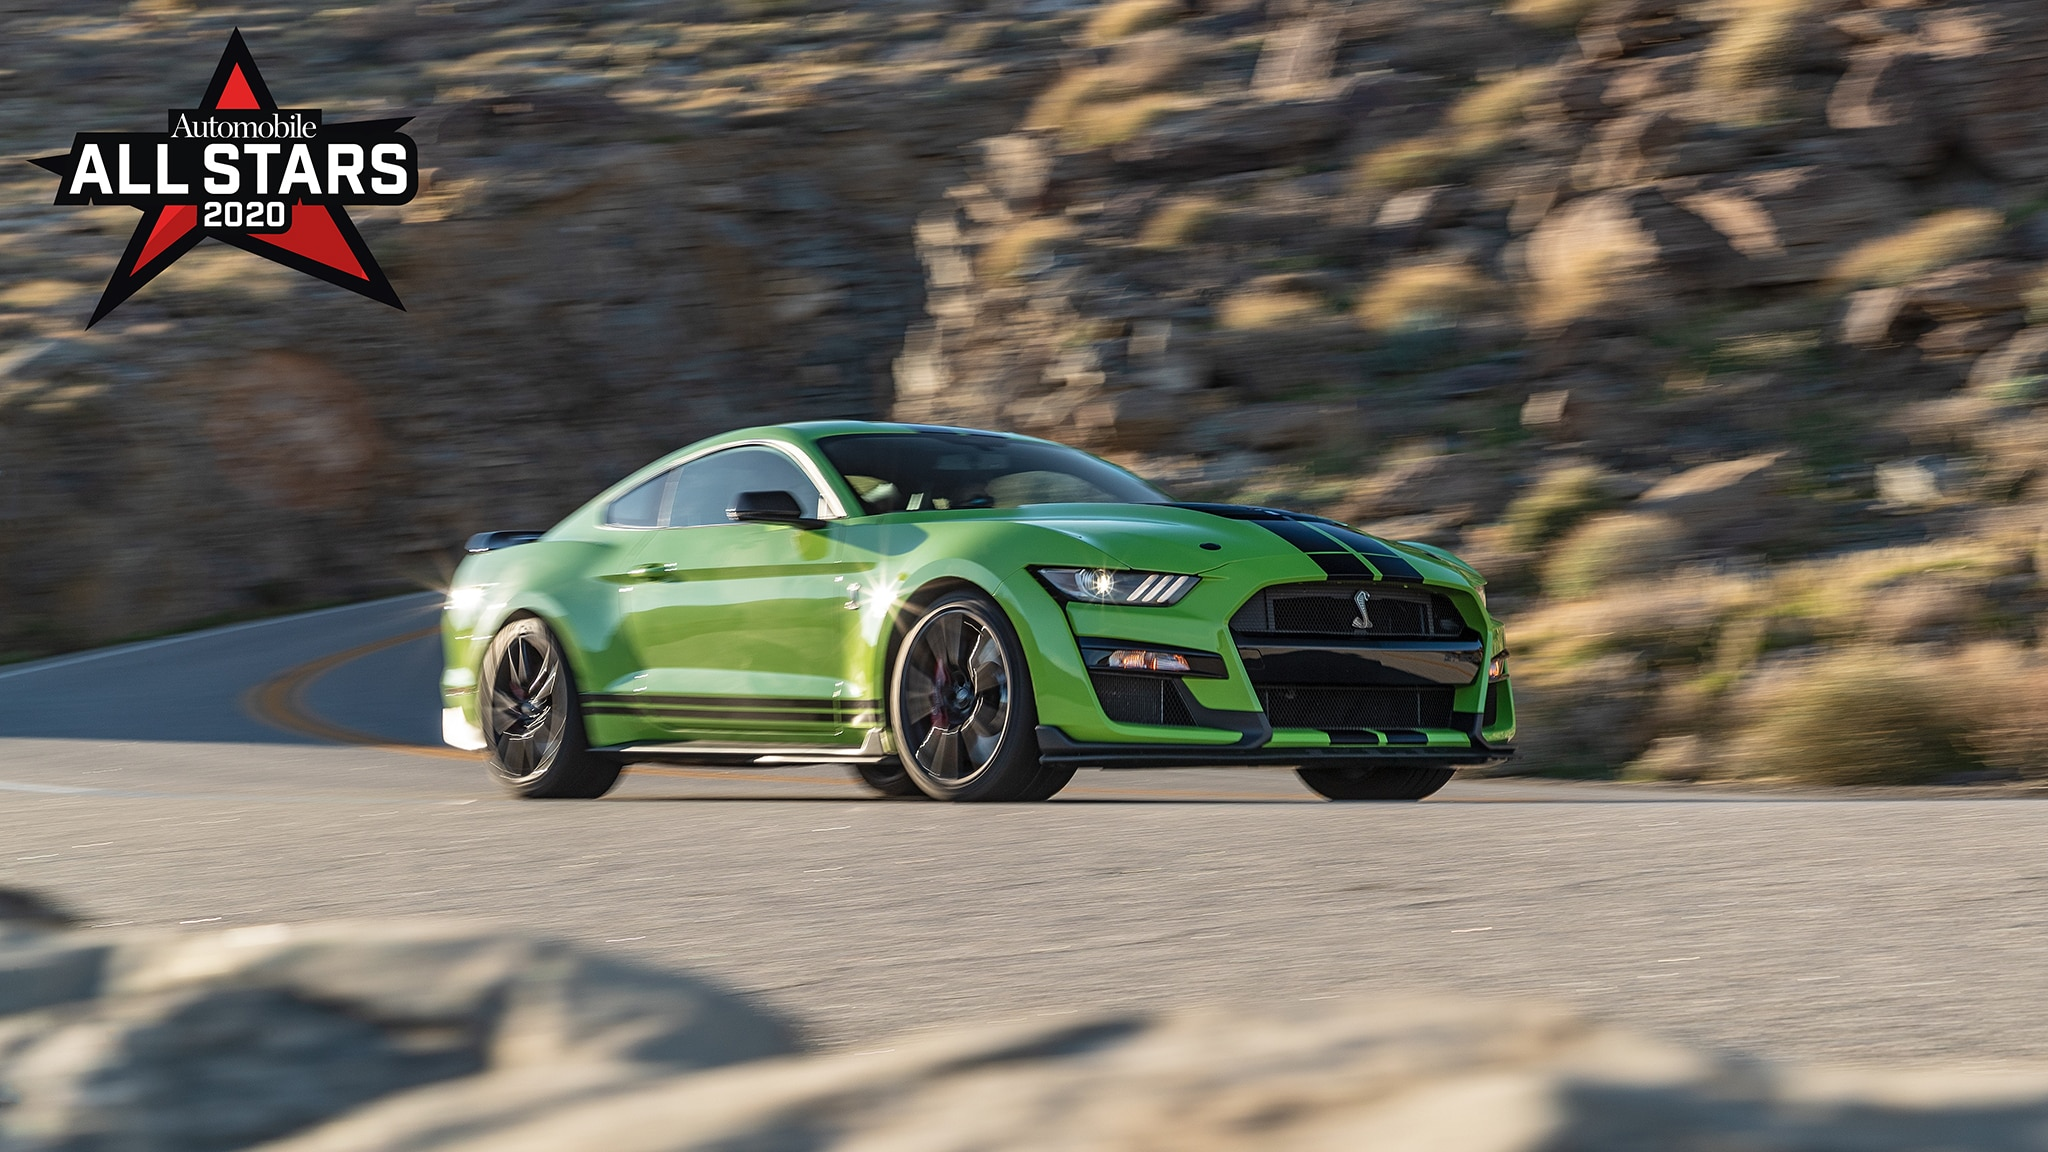 2020 ford mustang shelby gt500 test drive automobile all stars winner 2020 ford mustang shelby gt500 test